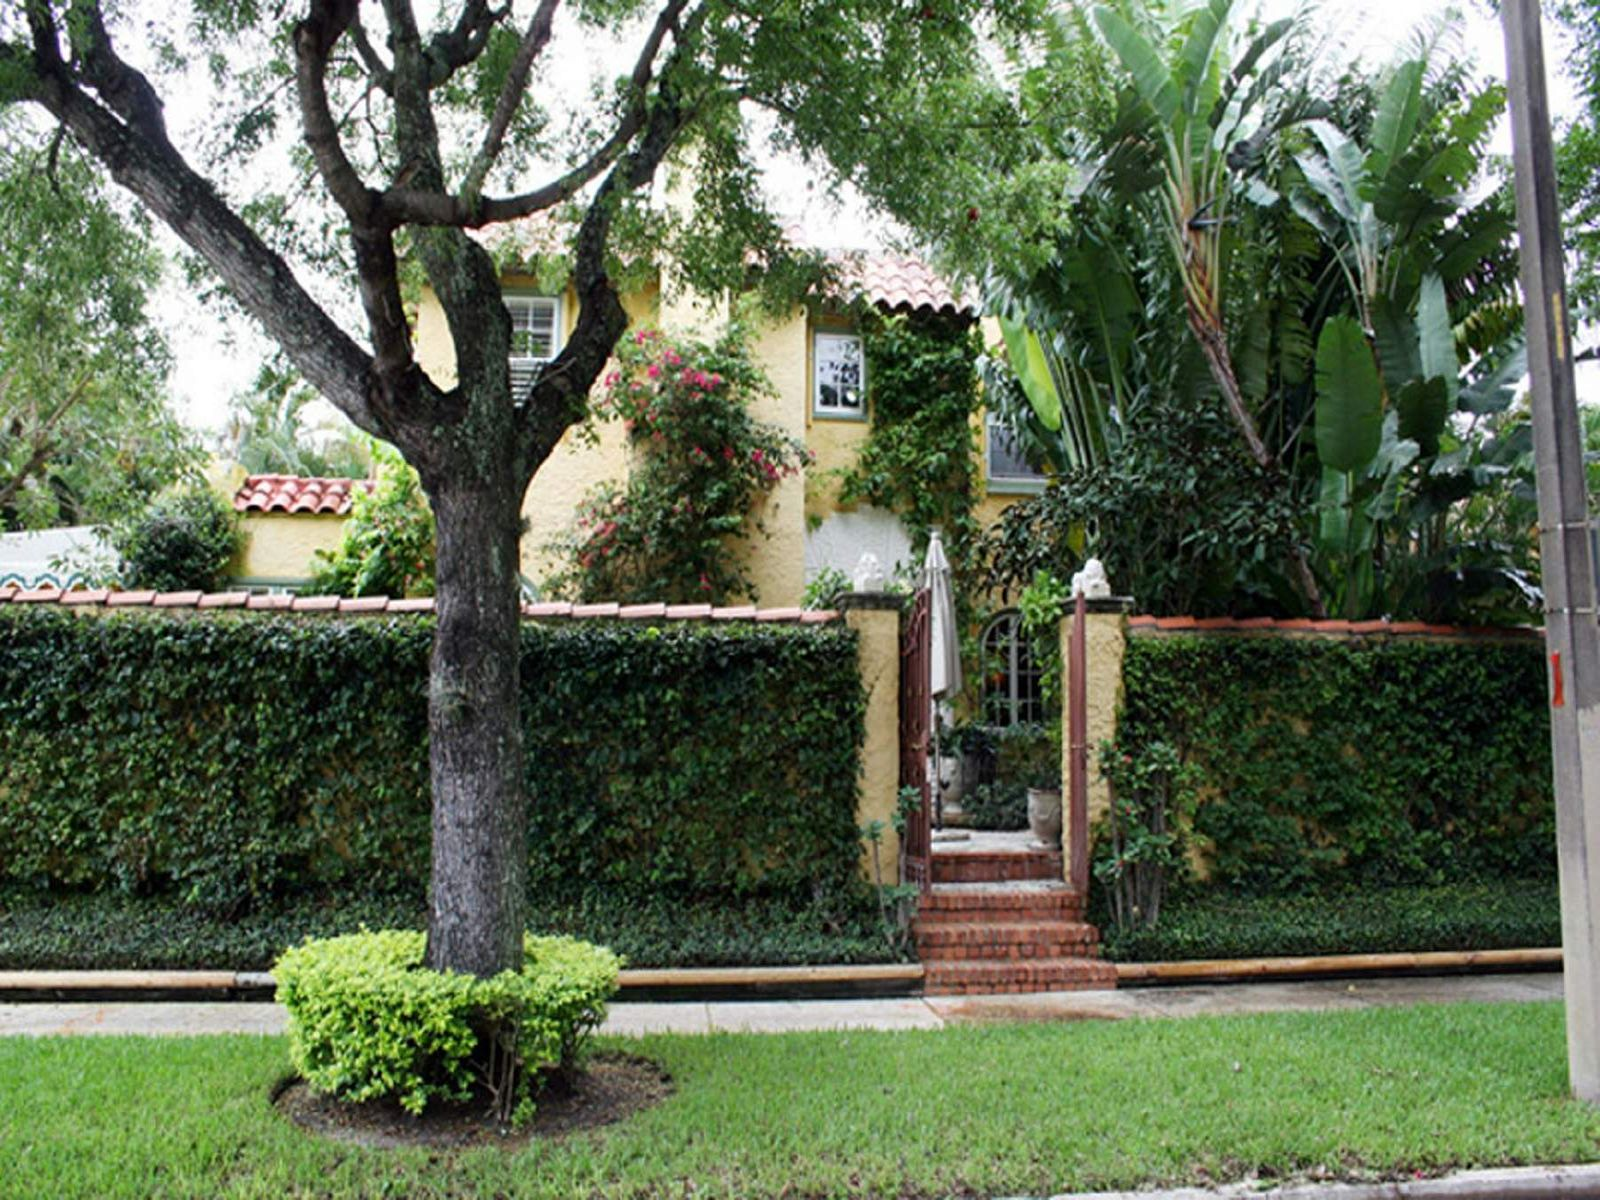 Historic Flamingo Park Mediterranean, West Palm Beach FL Single Family Home - Palm Beach Real Estate